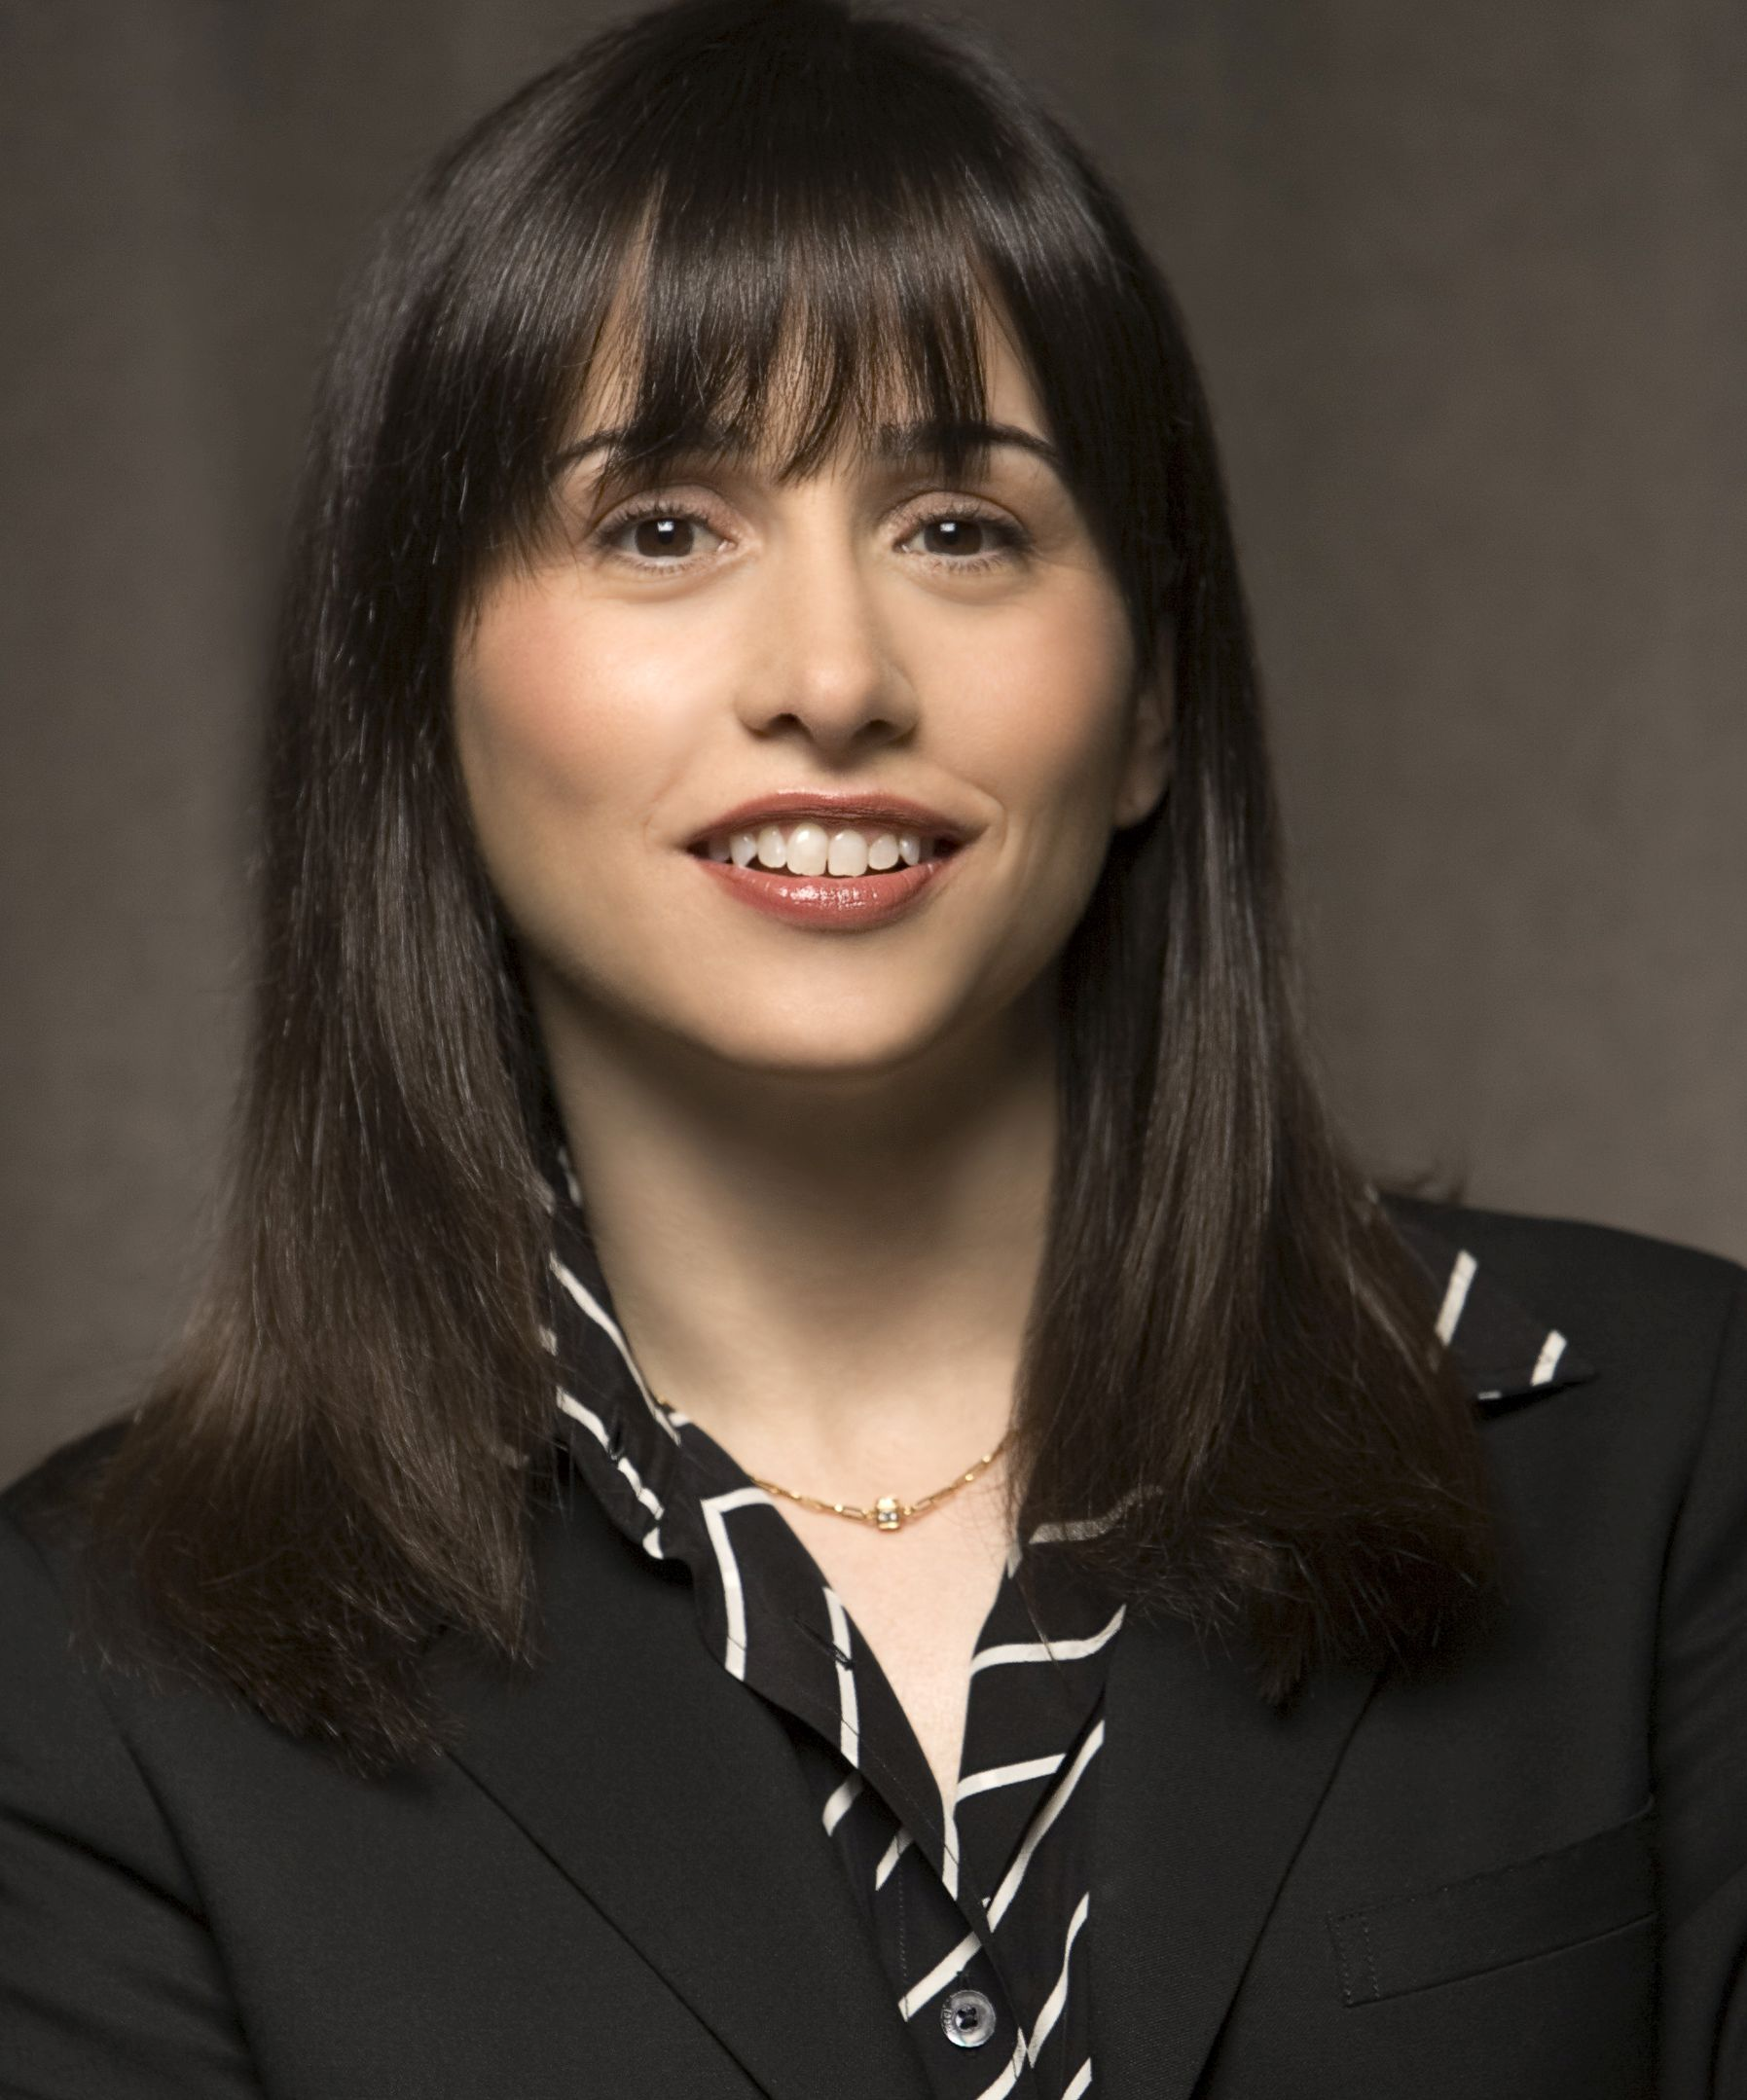 Dana Telsey is the CEO of the Telsey Advisory Group (TAG)